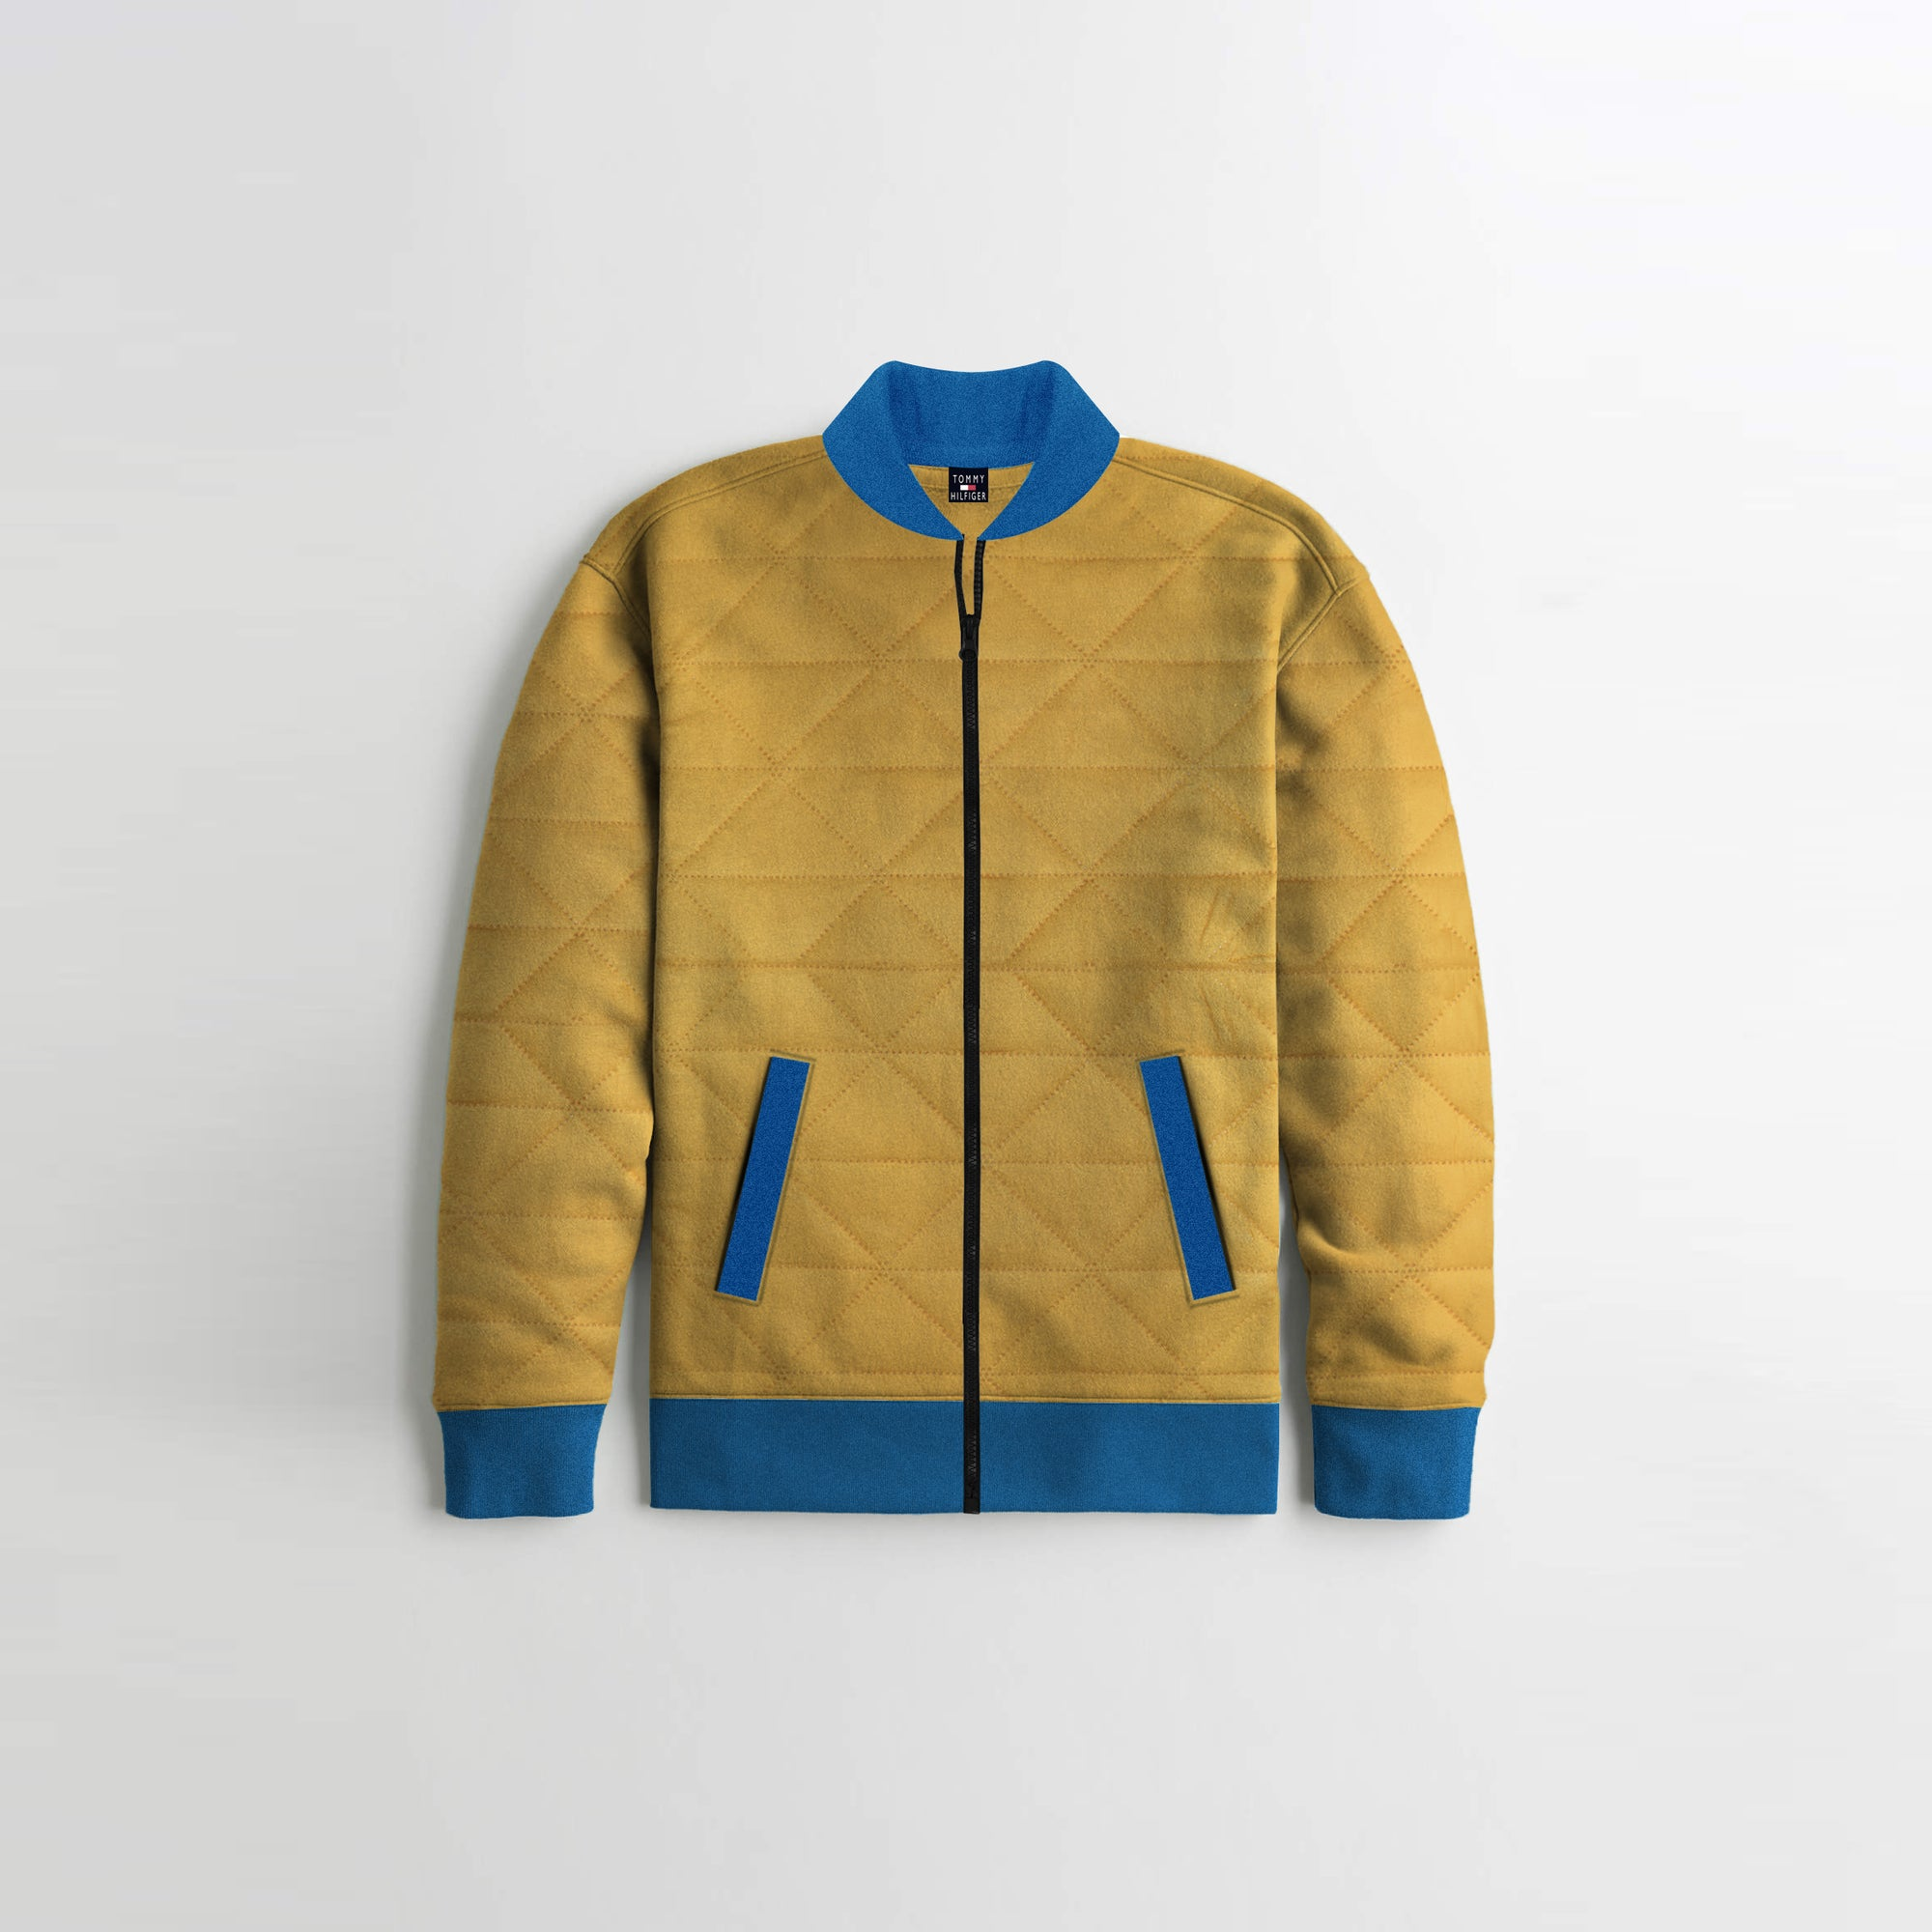 TH Quilted Zipper Baseball Jacket For Kids-Yellow & Blue-SP3815